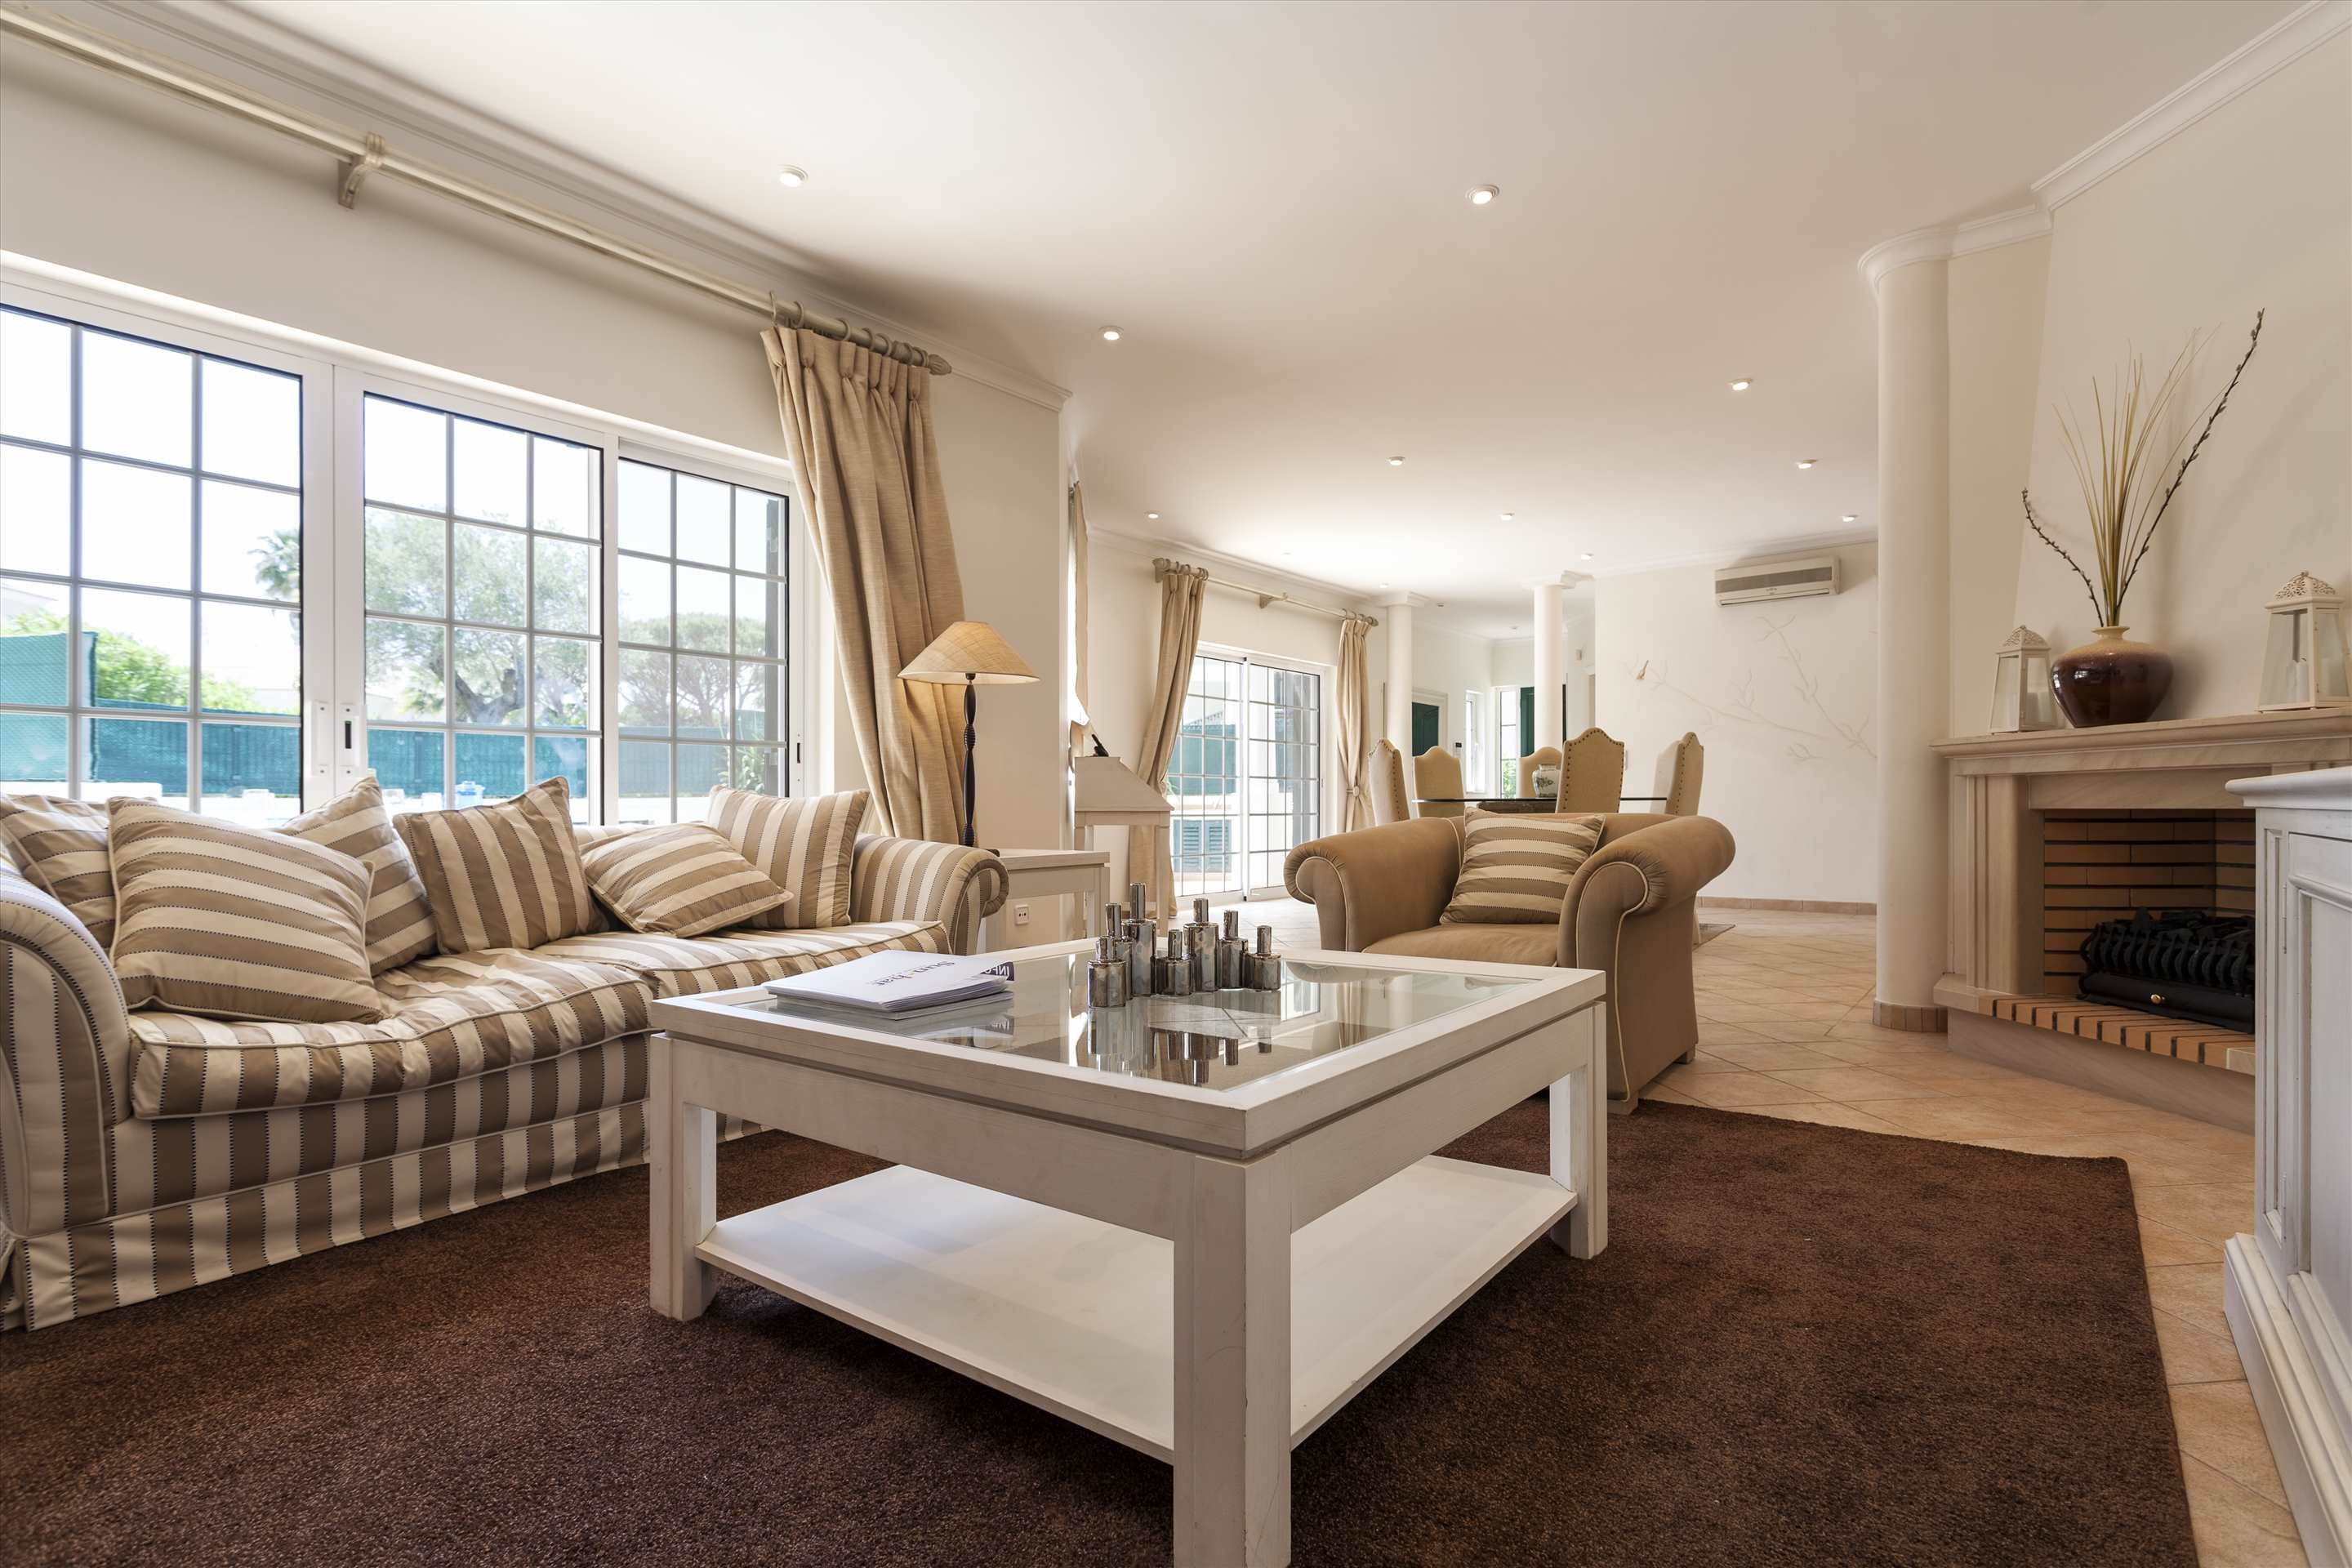 Villa Catarina, 3 bedroom apartment in Vale do Lobo, Algarve Photo #5